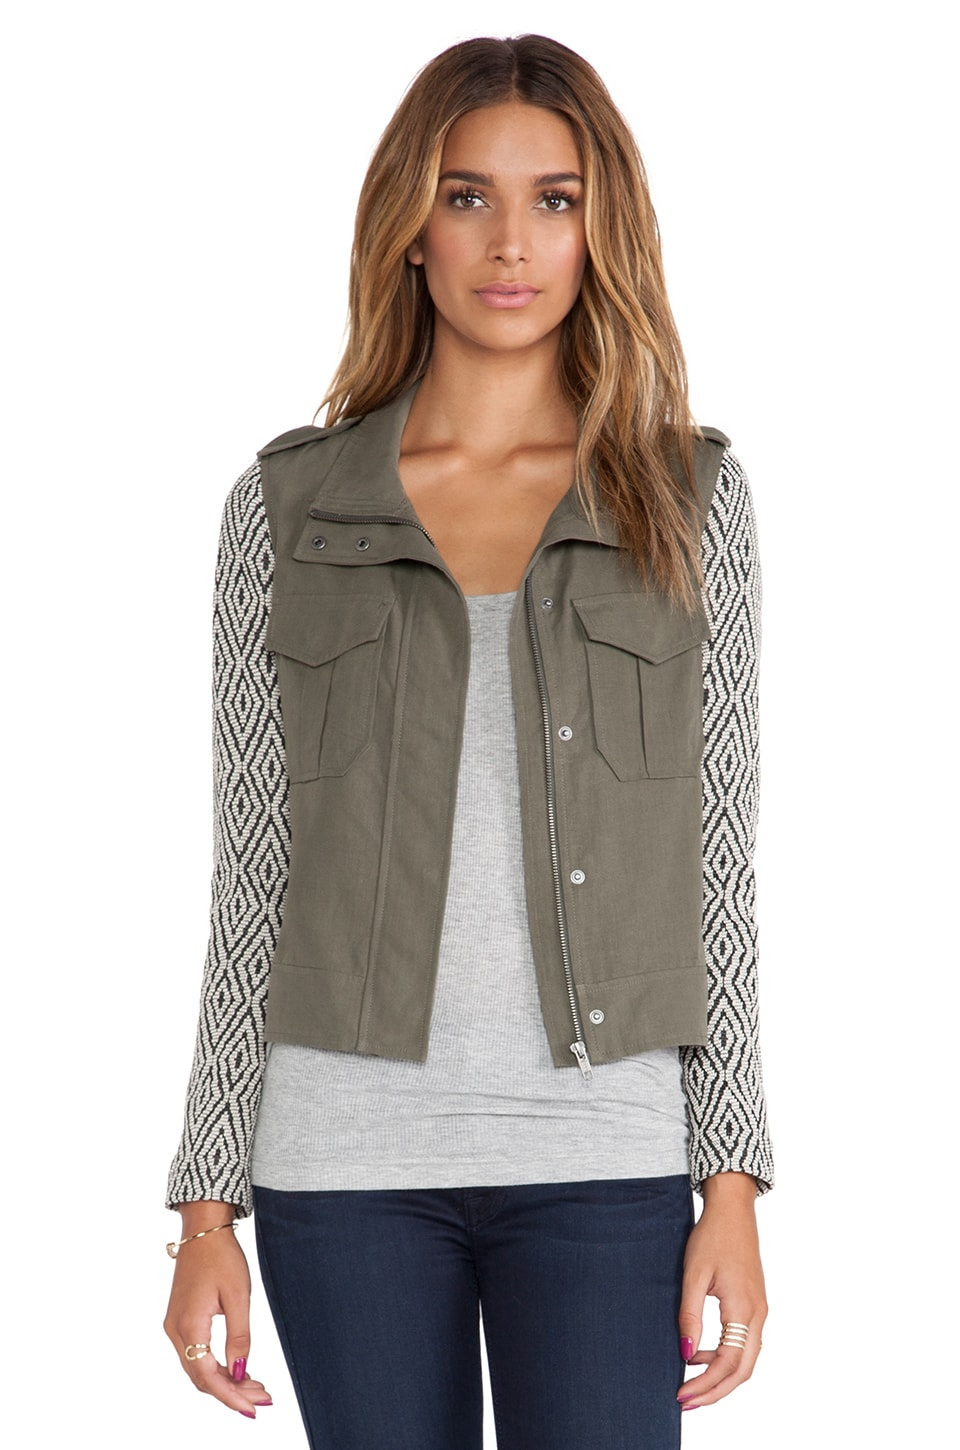 Ella Moss Minka Jacket in Olive & Natural